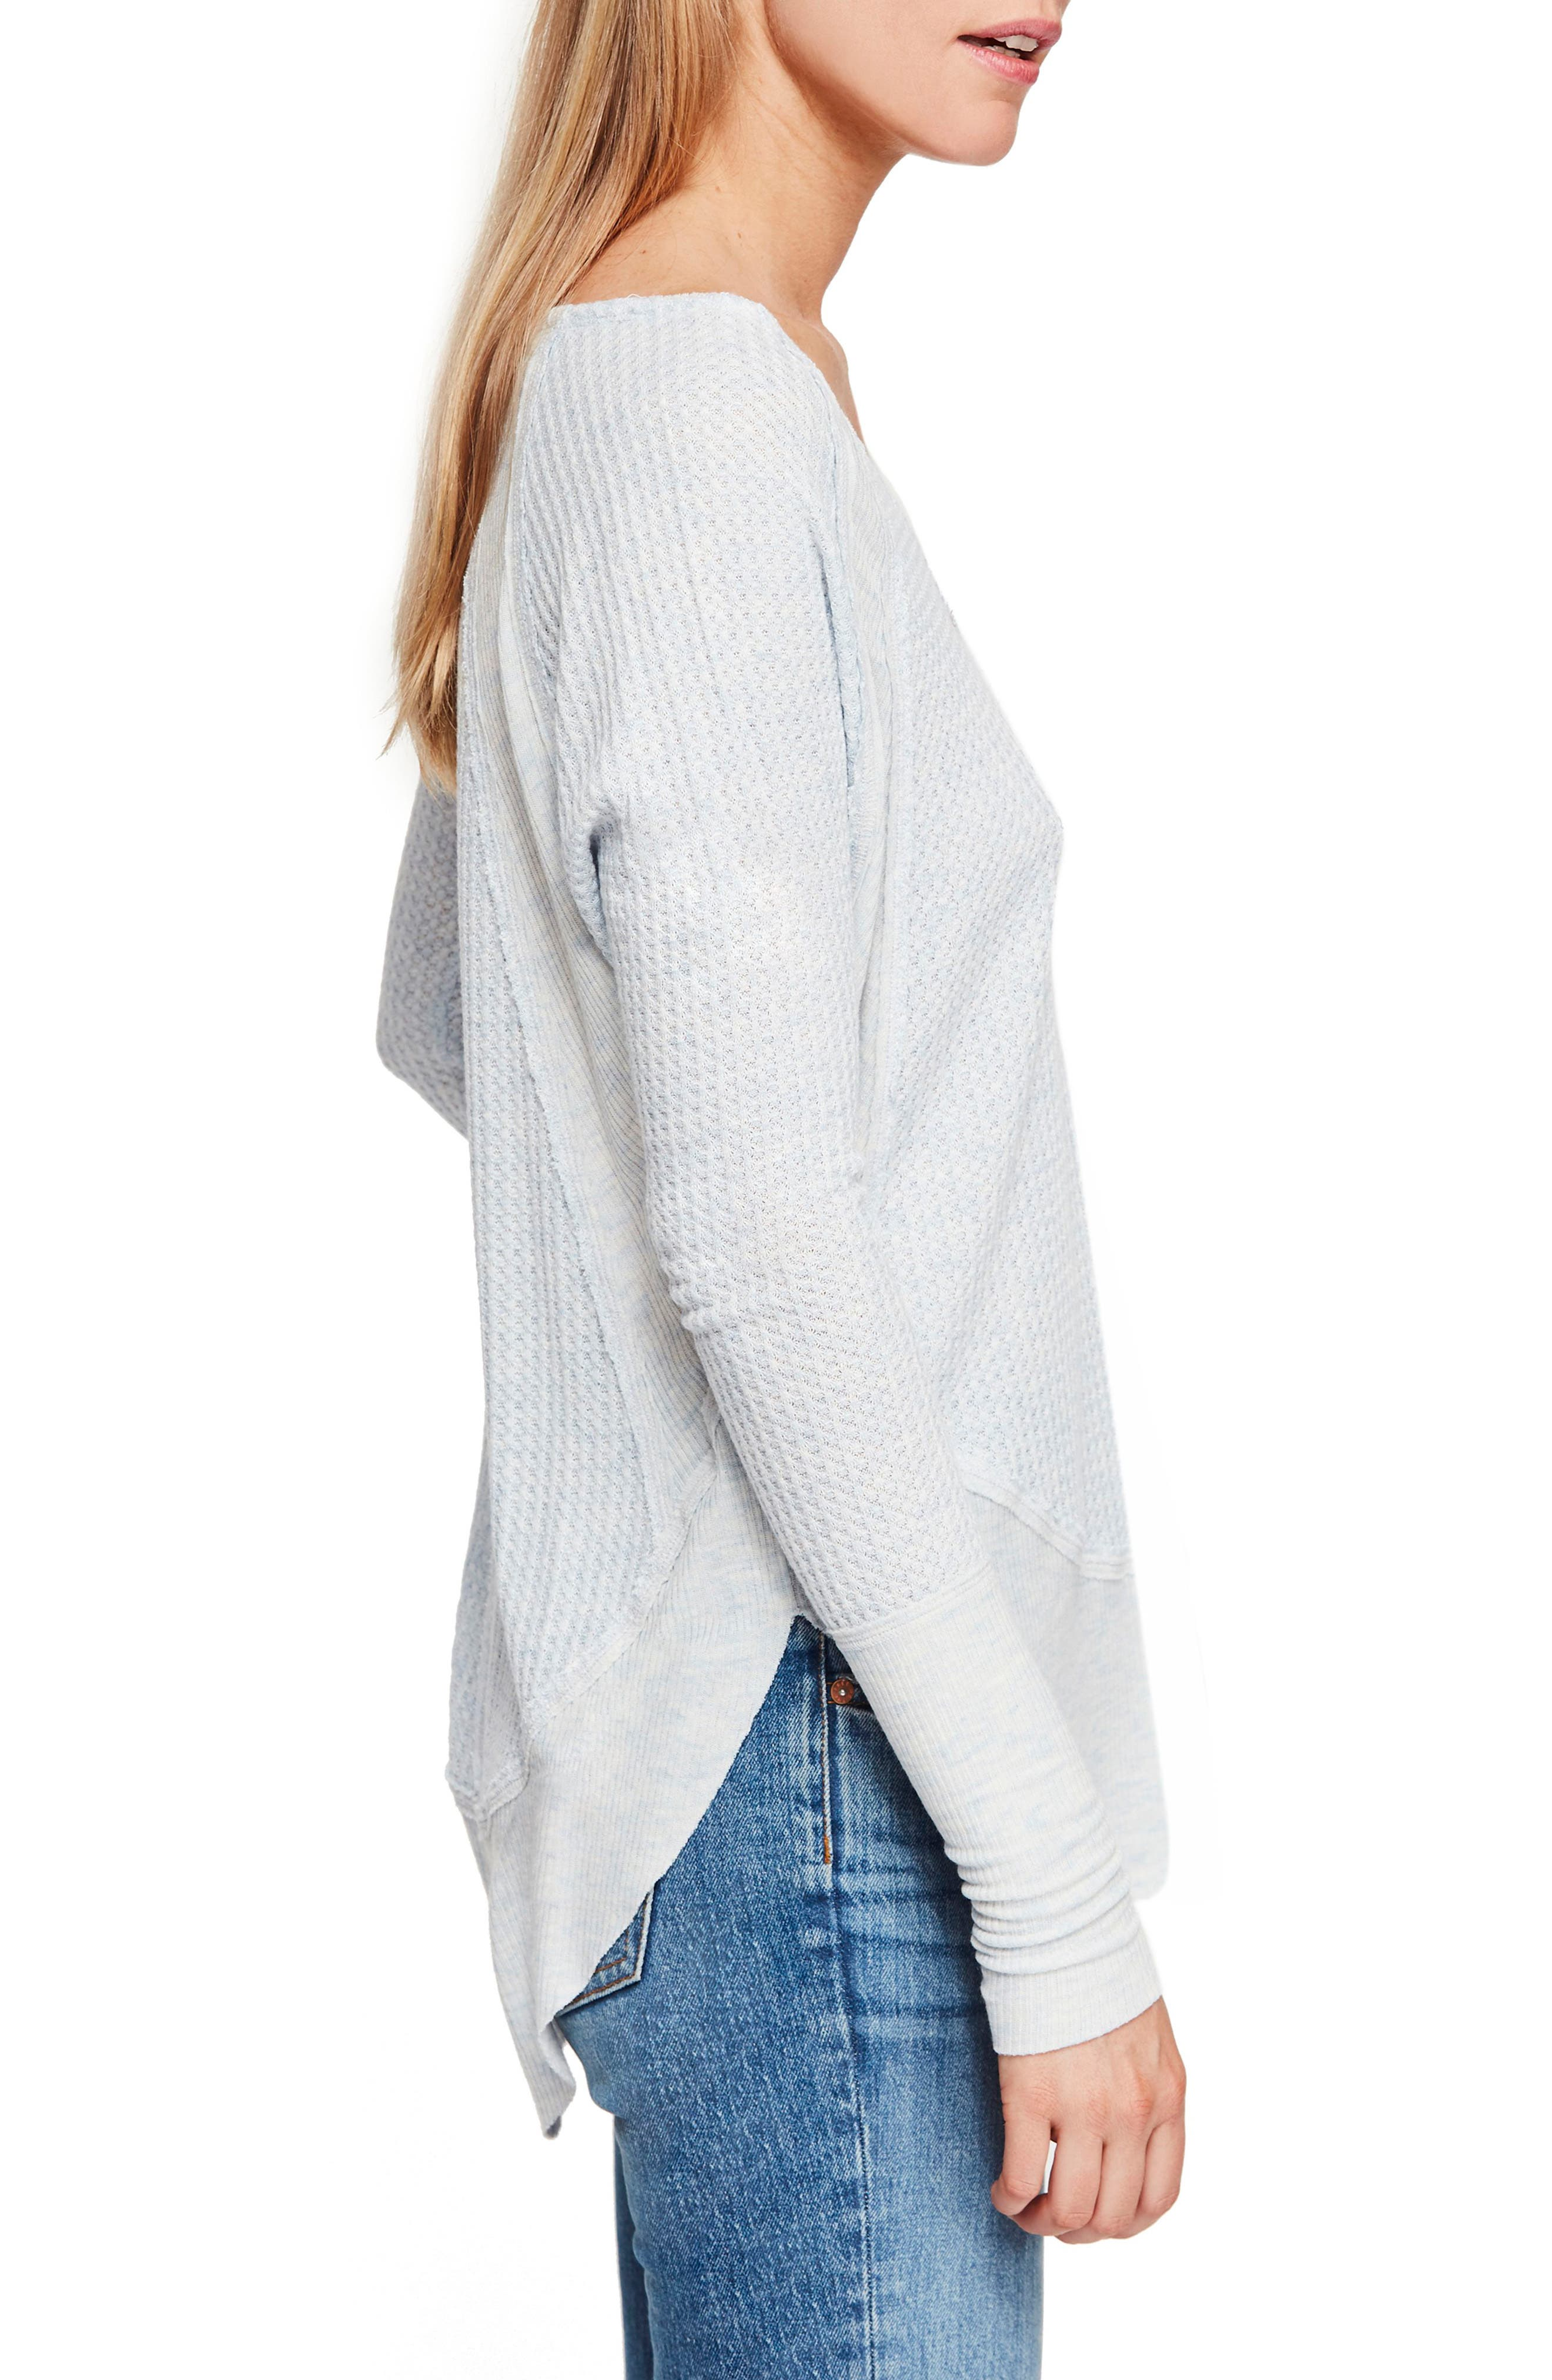 FREE PEOPLE,                             We the Free by Free People Catalina V-Neck Thermal Top,                             Alternate thumbnail 3, color,                             SKY